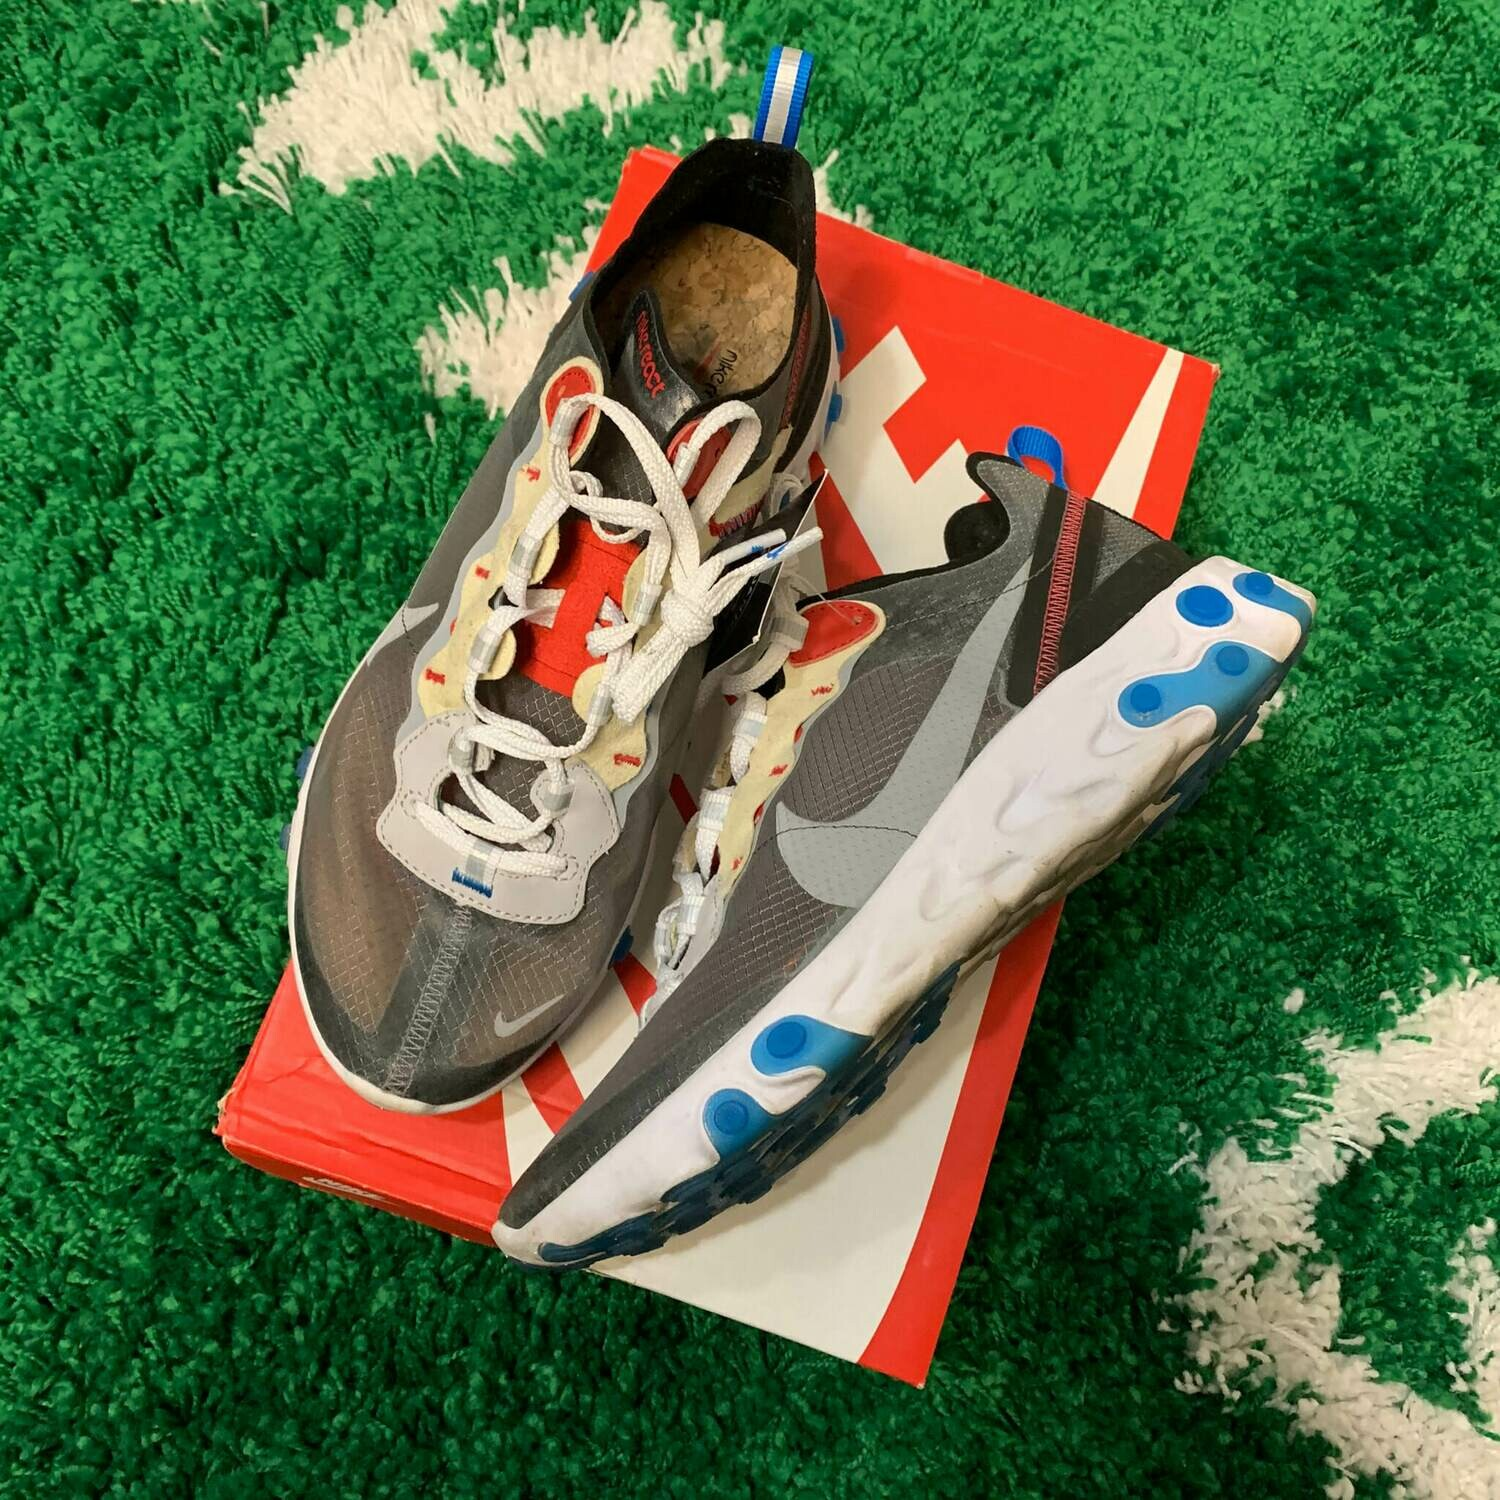 Nike React Element 87 Dark Grey Size 7.5